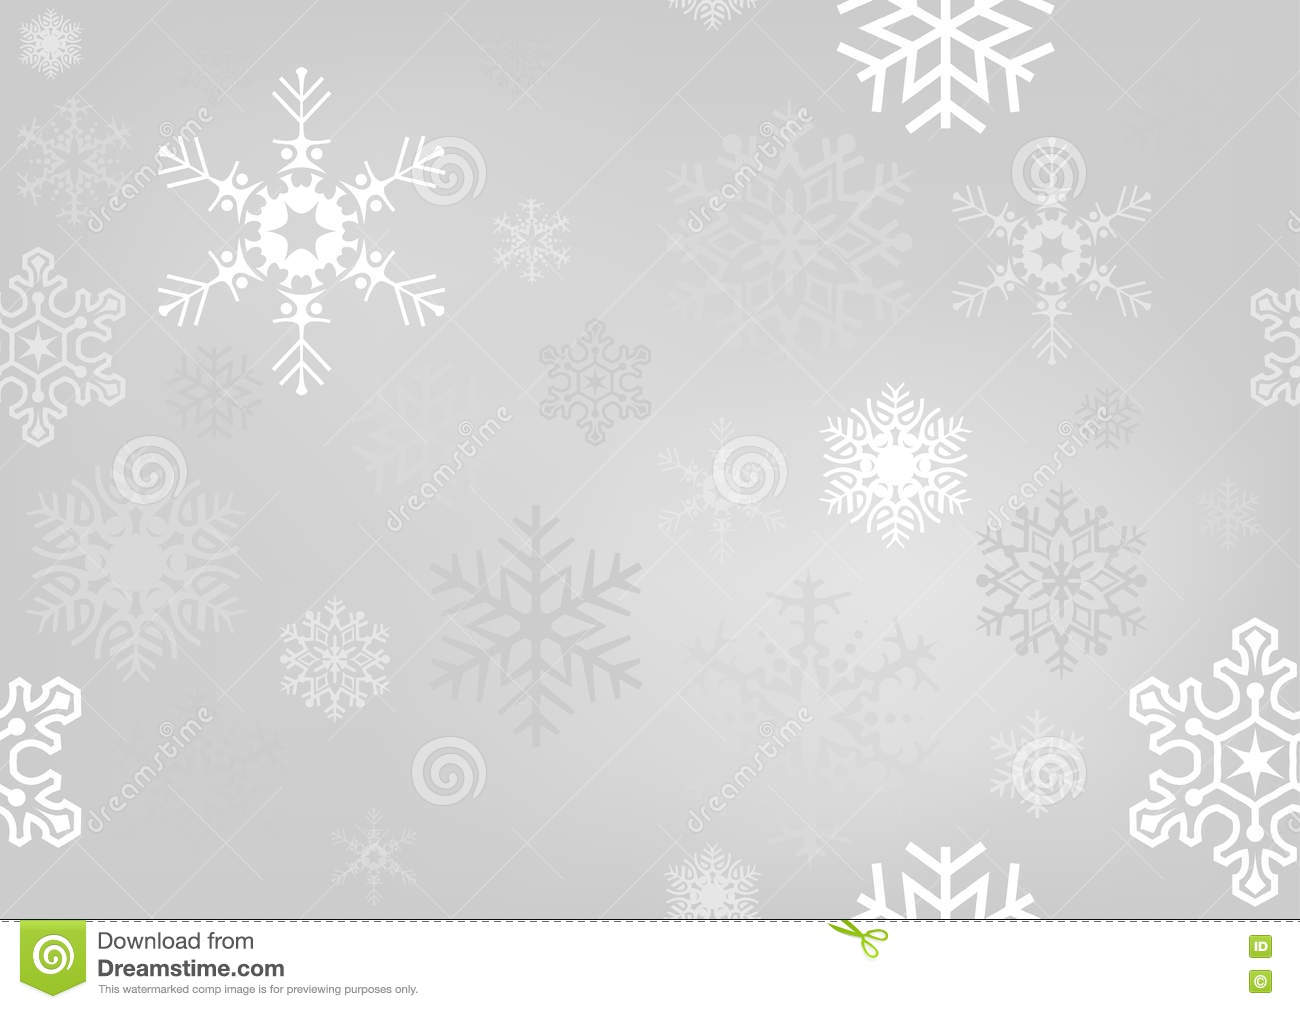 Free Christmas Falling Snow Wallpaper Silver Christmas Paper With Snowflakes Stock Vector